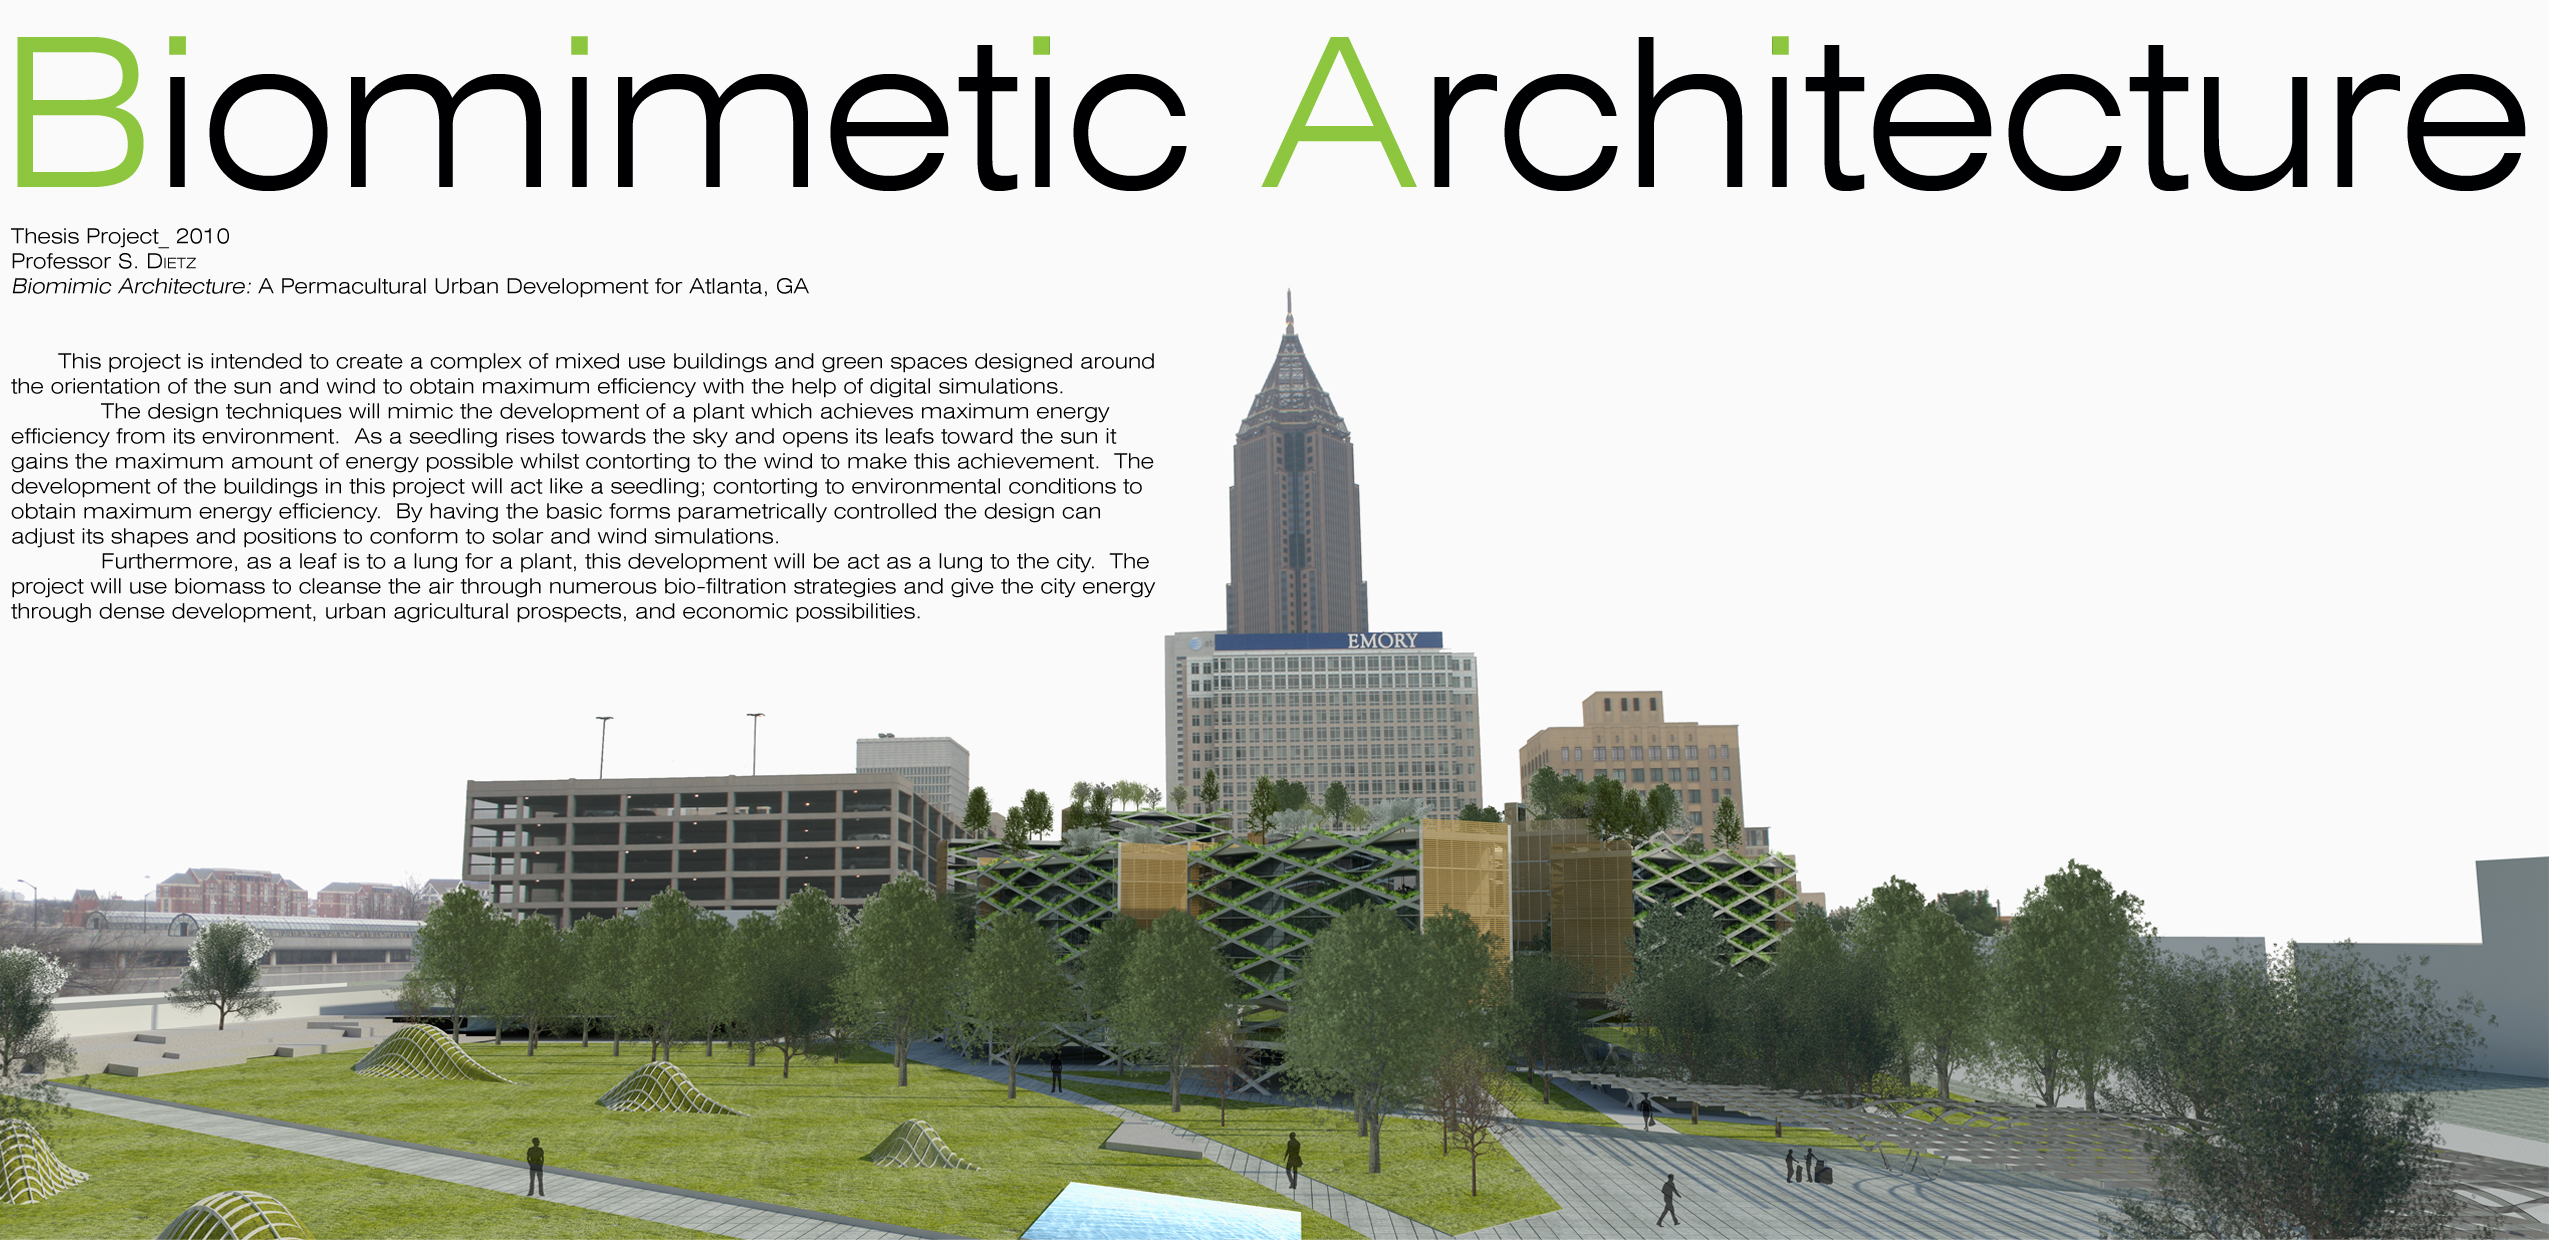 biomimetic architecture